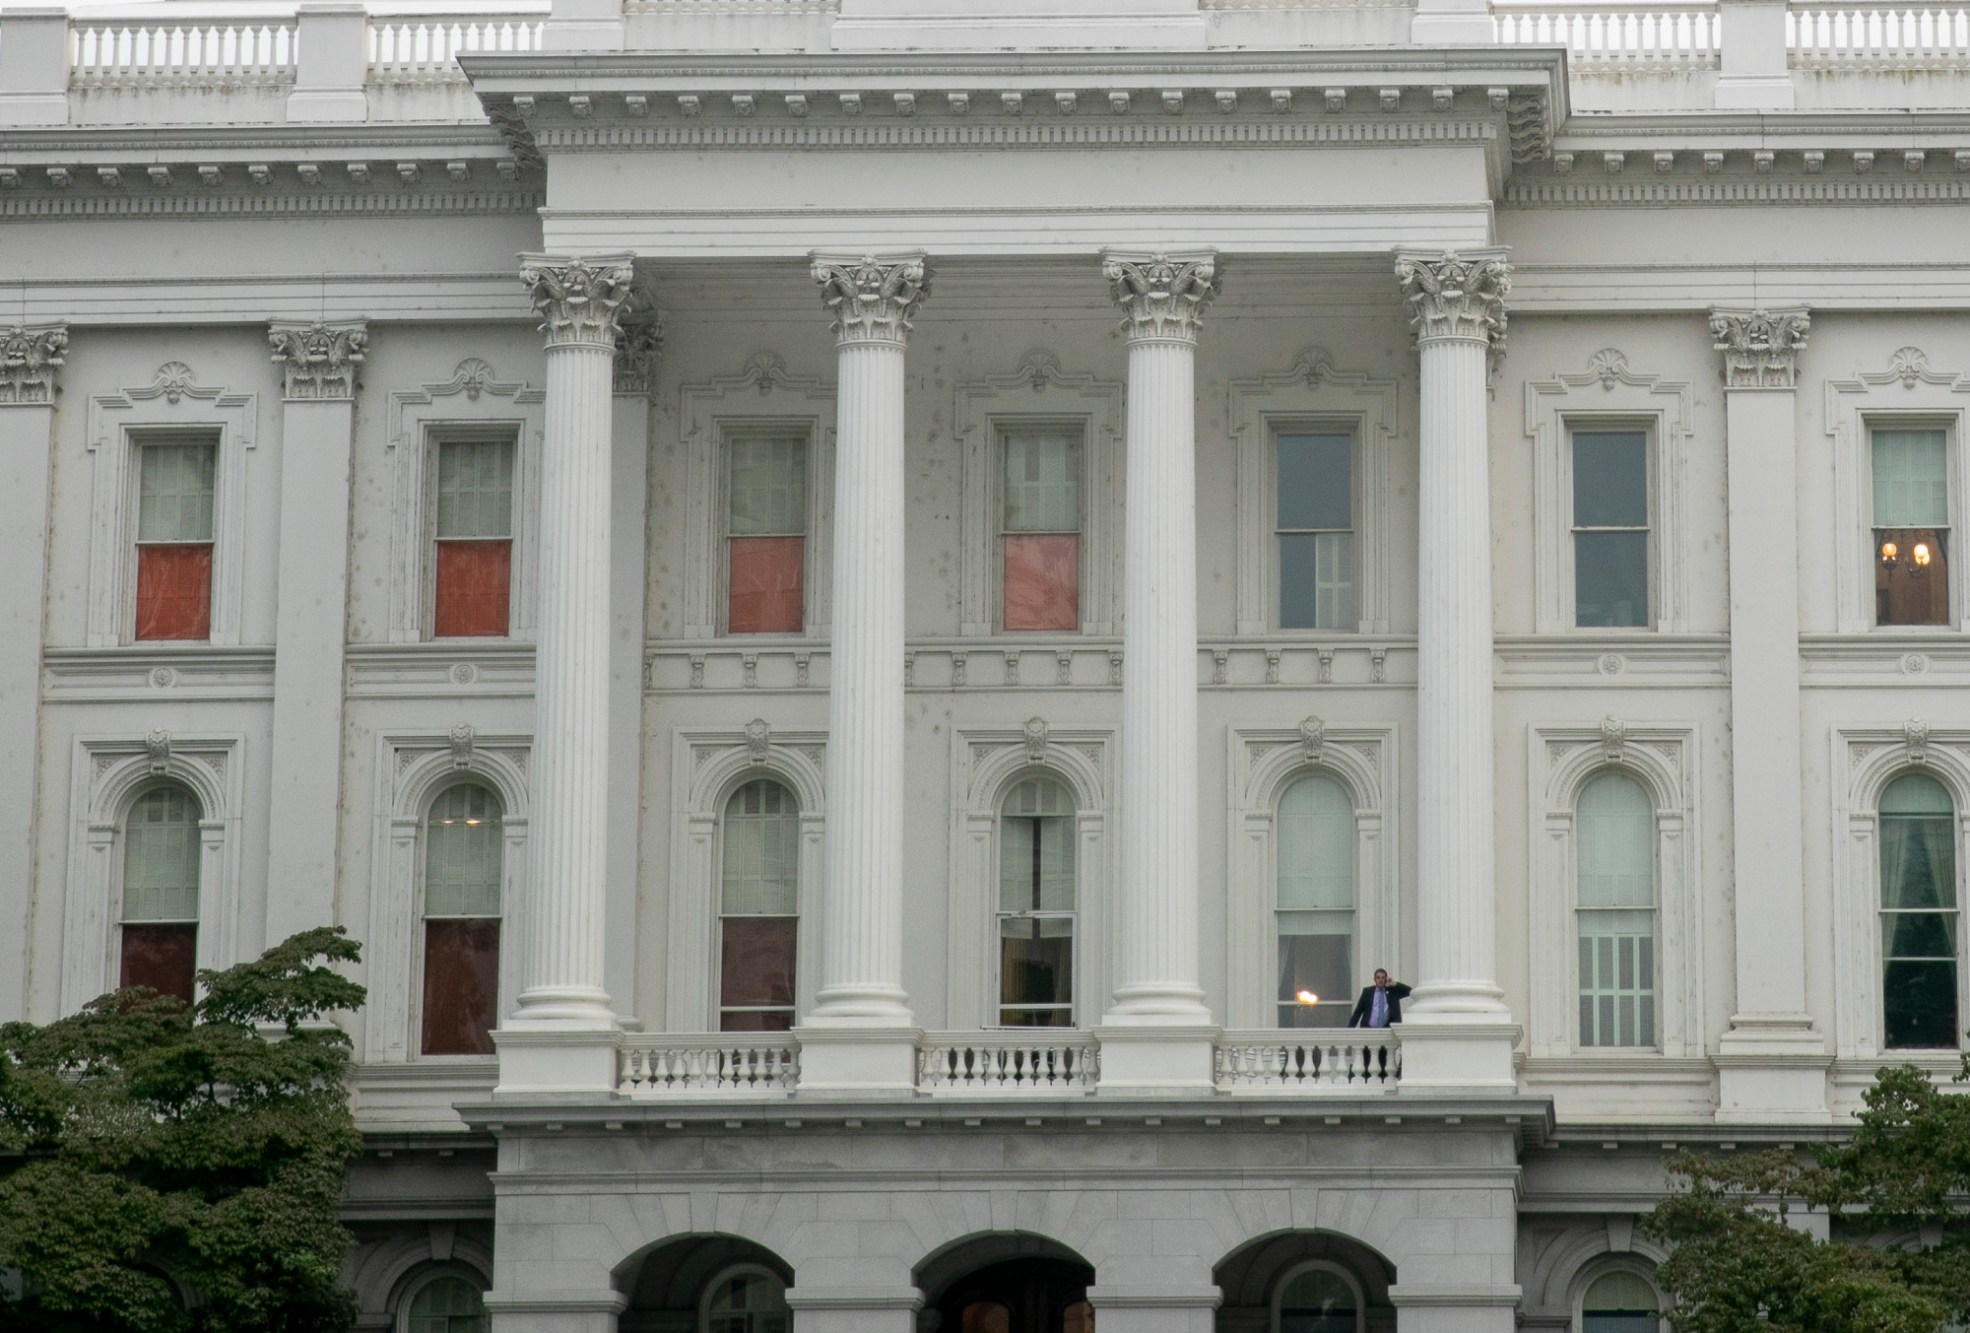 A man steps outside to take a phone call on the balcony of the capitol during the assembly recess on Aug. 31, 2020. Photo by Anne Wernikoff for CalMatters